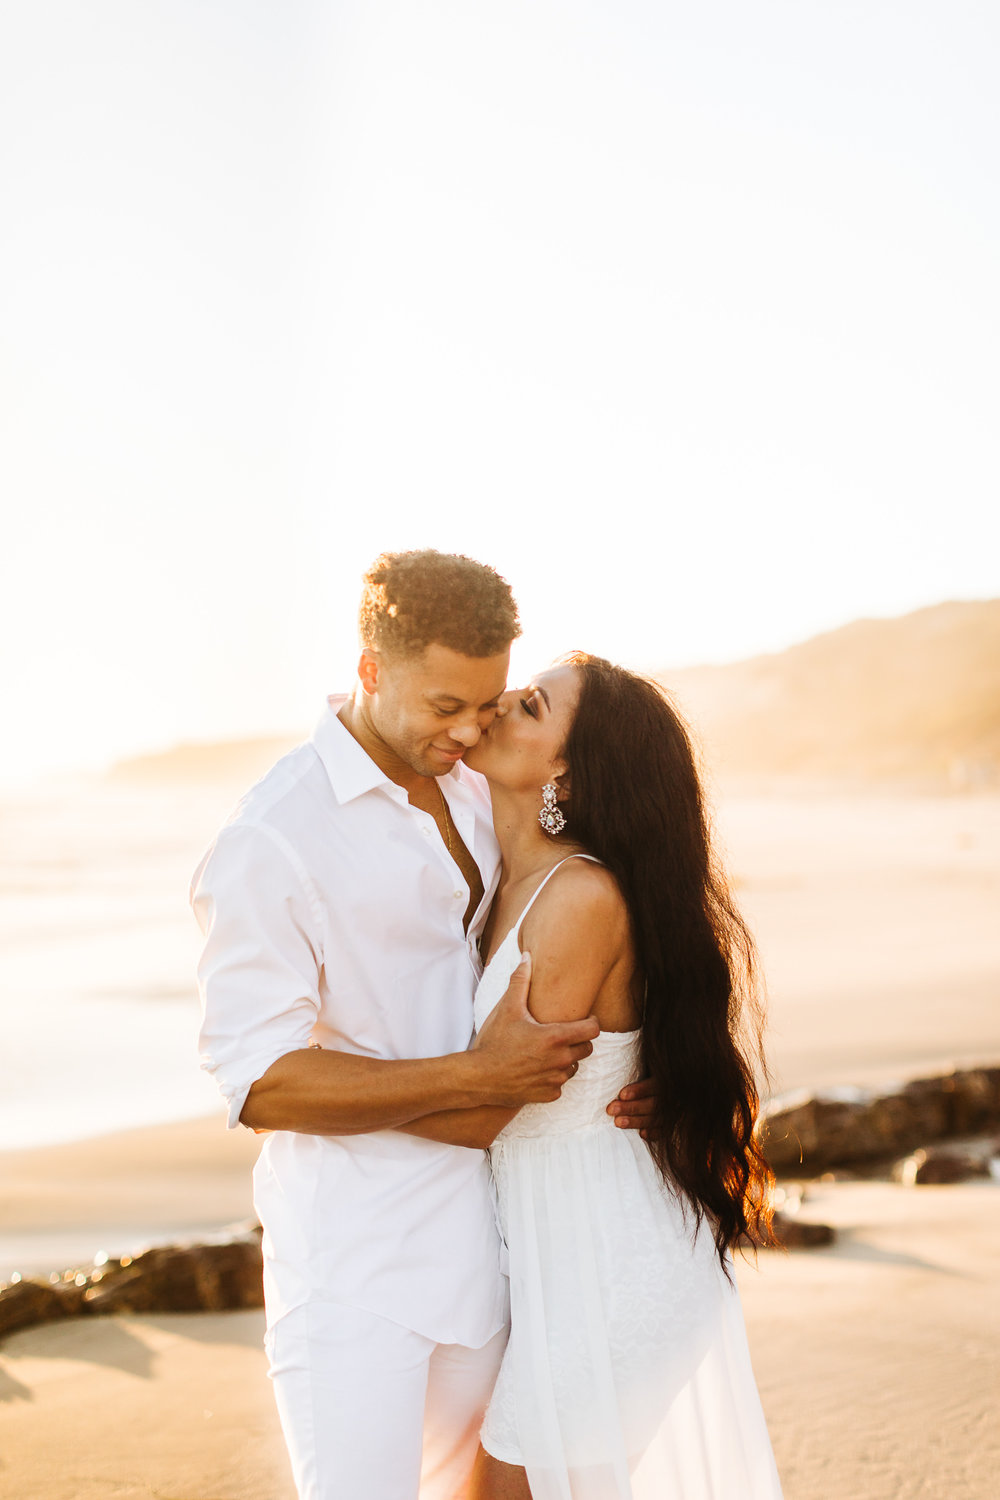 Nanis&Jay-Crystal-Cove-Beach-Engagement-Session-Clarisse-Rae-Photo-&-Video-Orange-County-Wedding-Photographer-&-Videographer_33